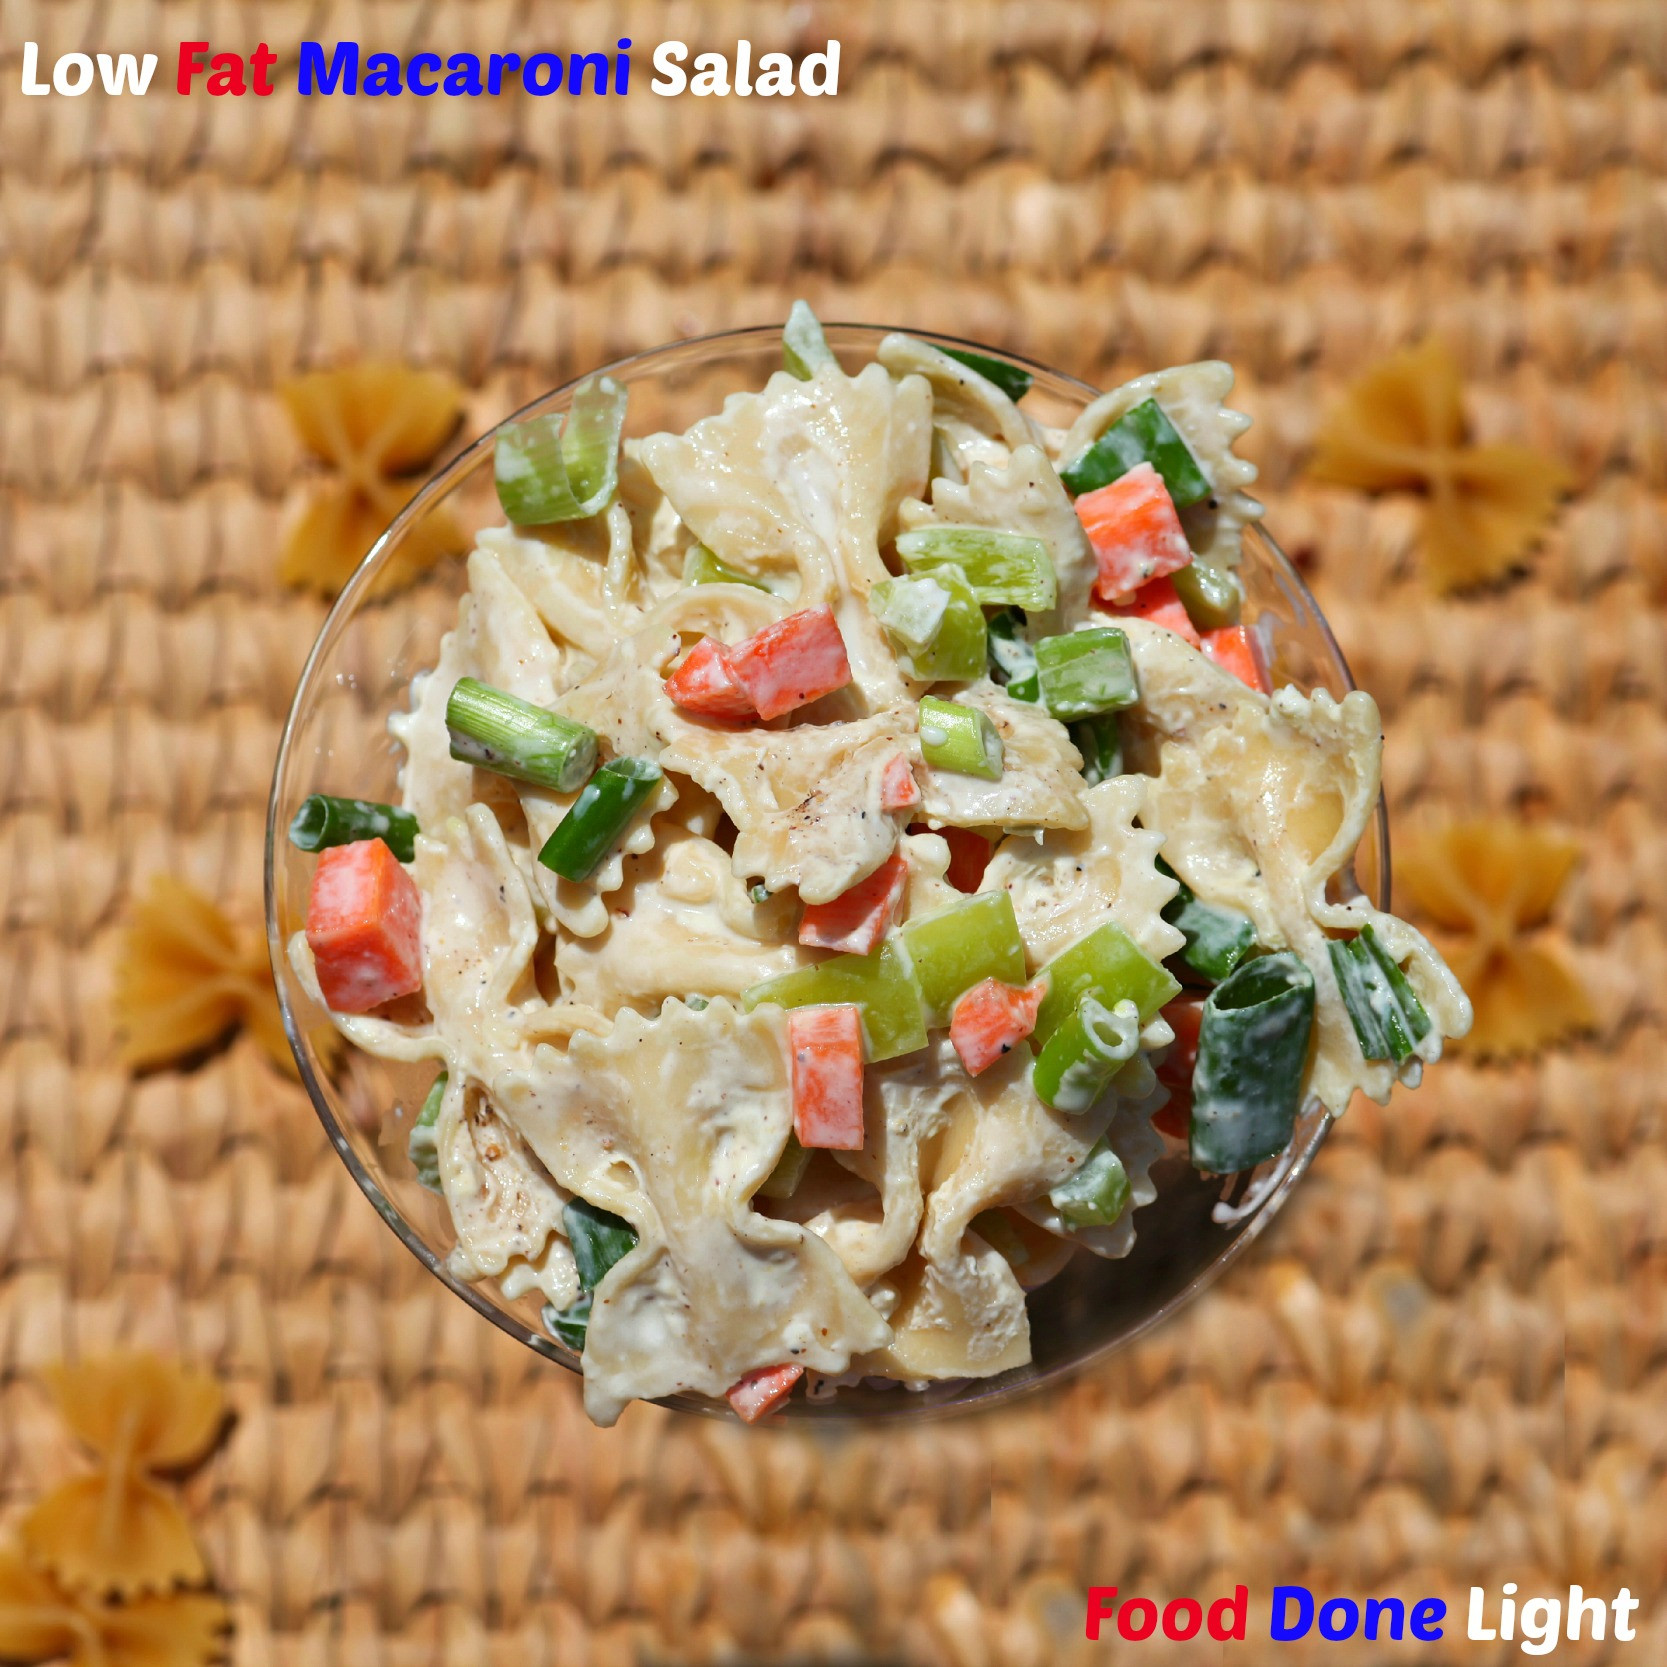 Low Calorie Macaroni Salad  Low Fat Macaroni Salad